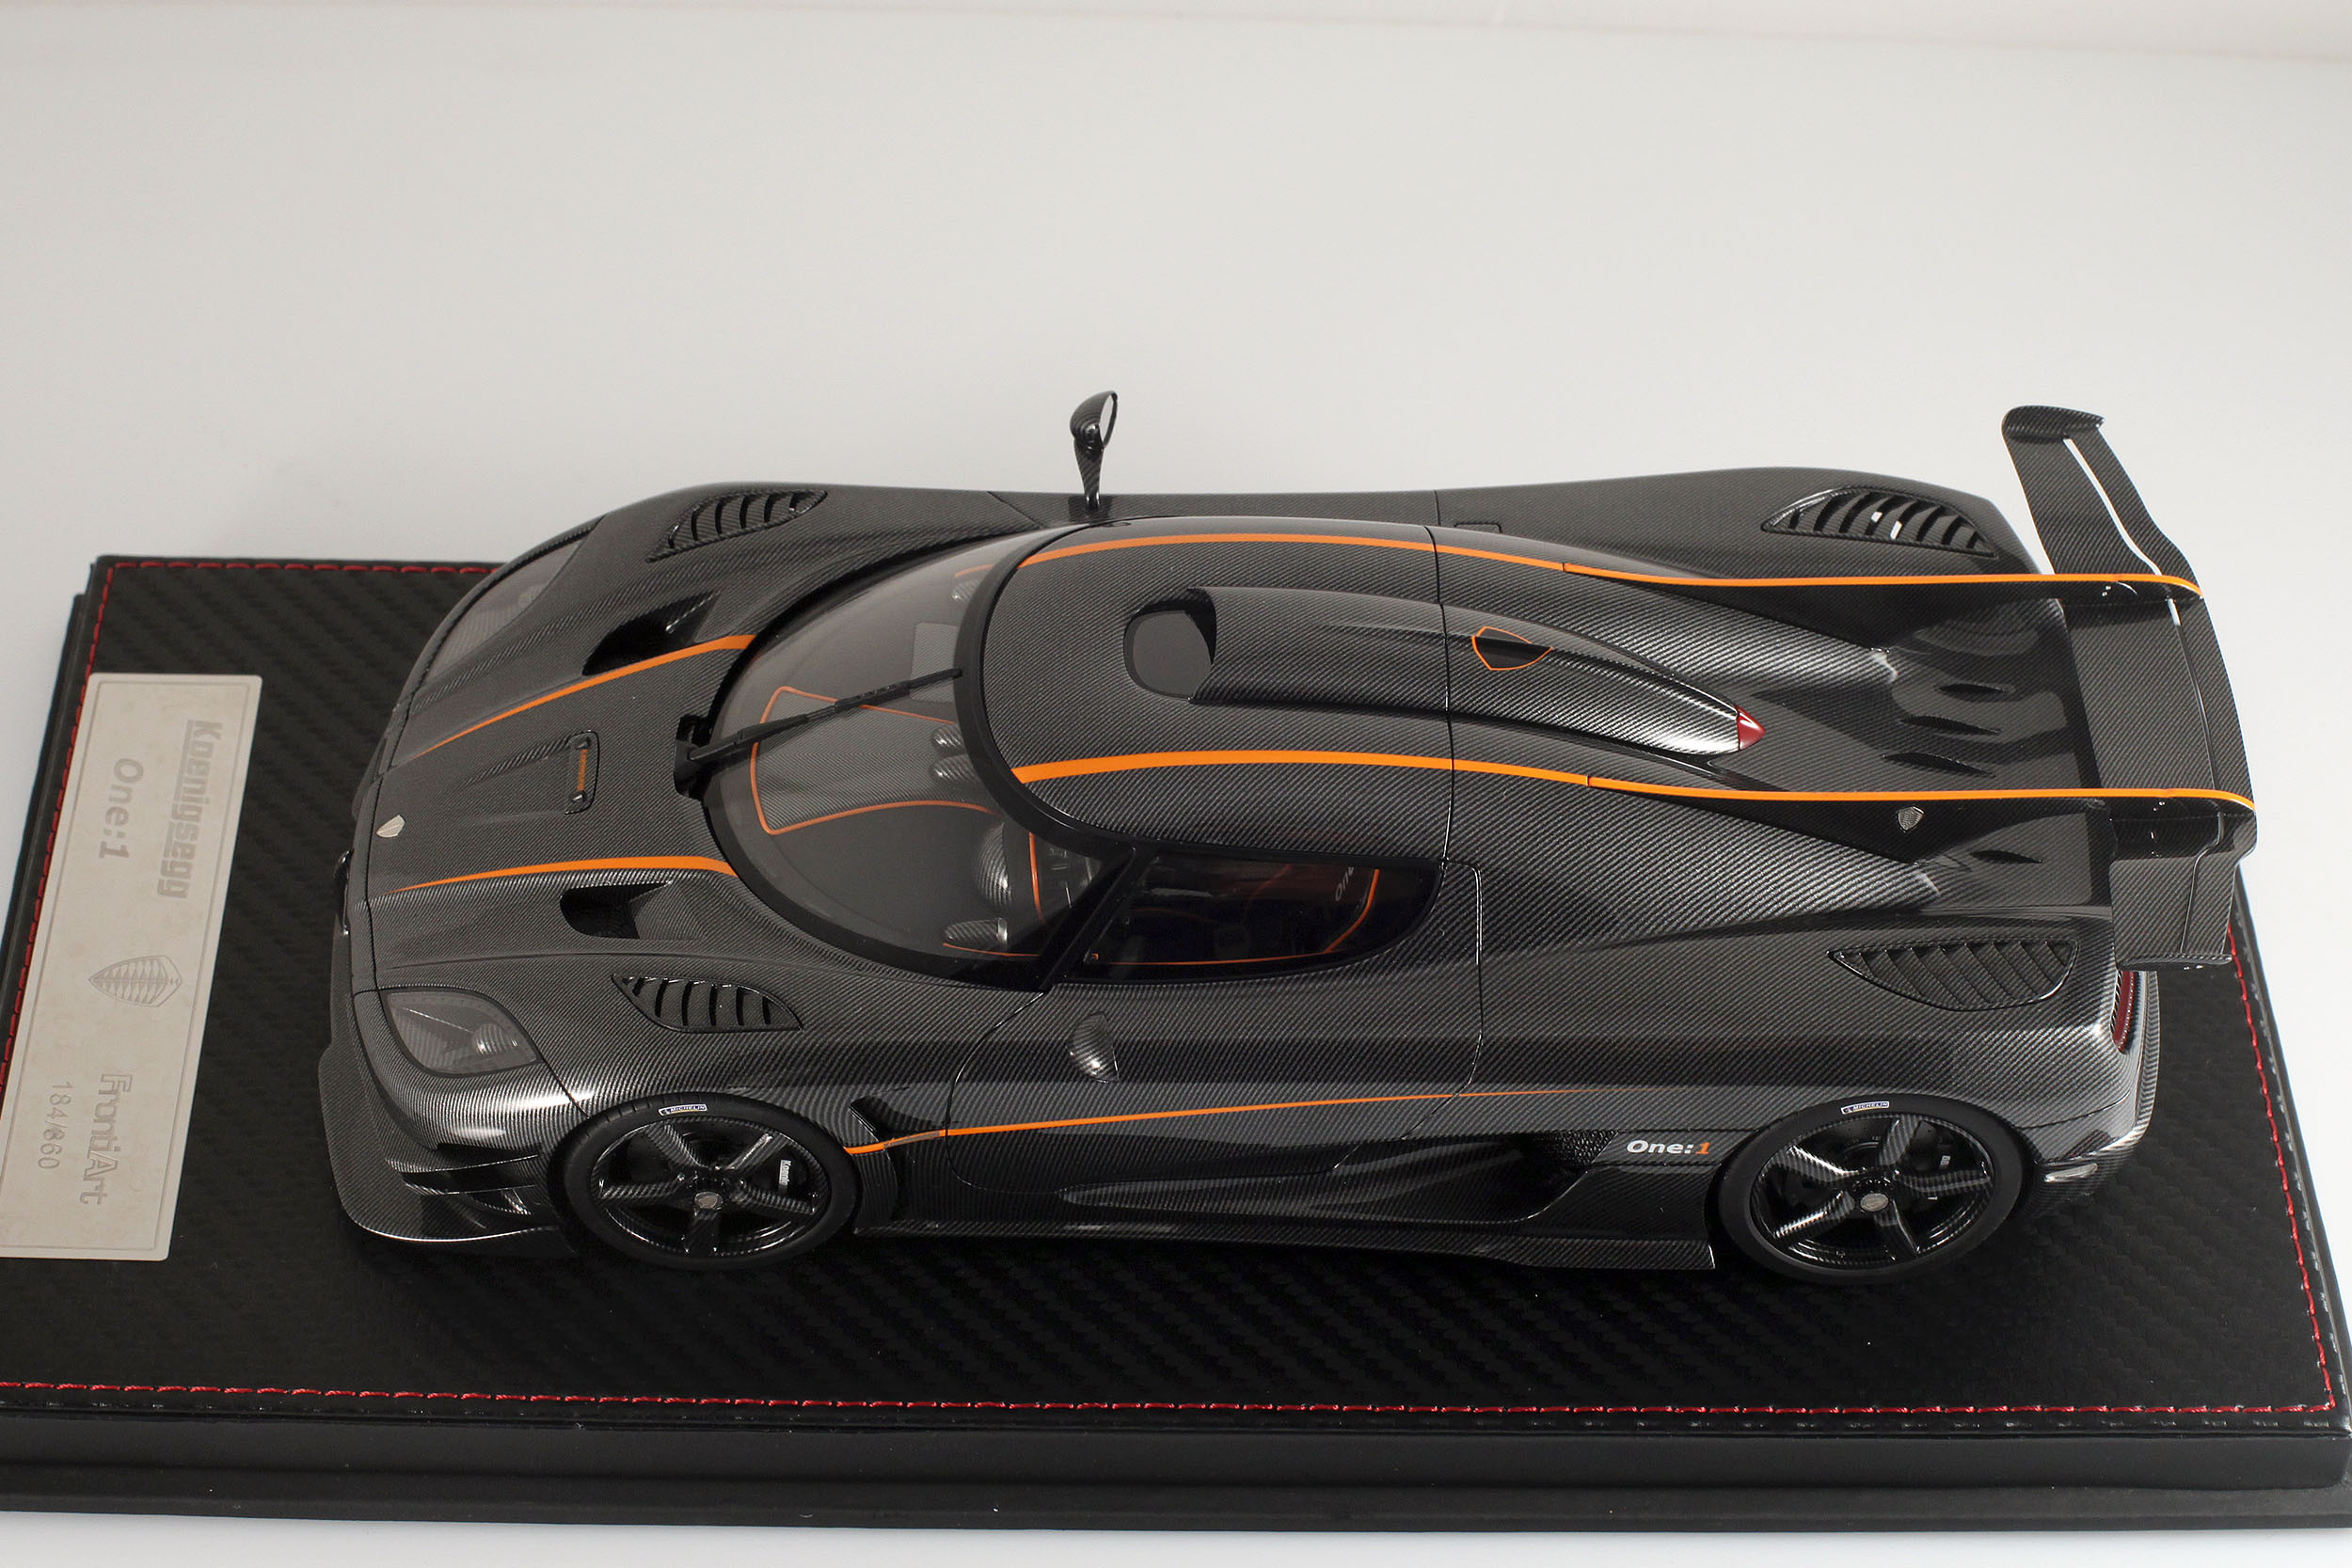 Agera-One1-carbone-17